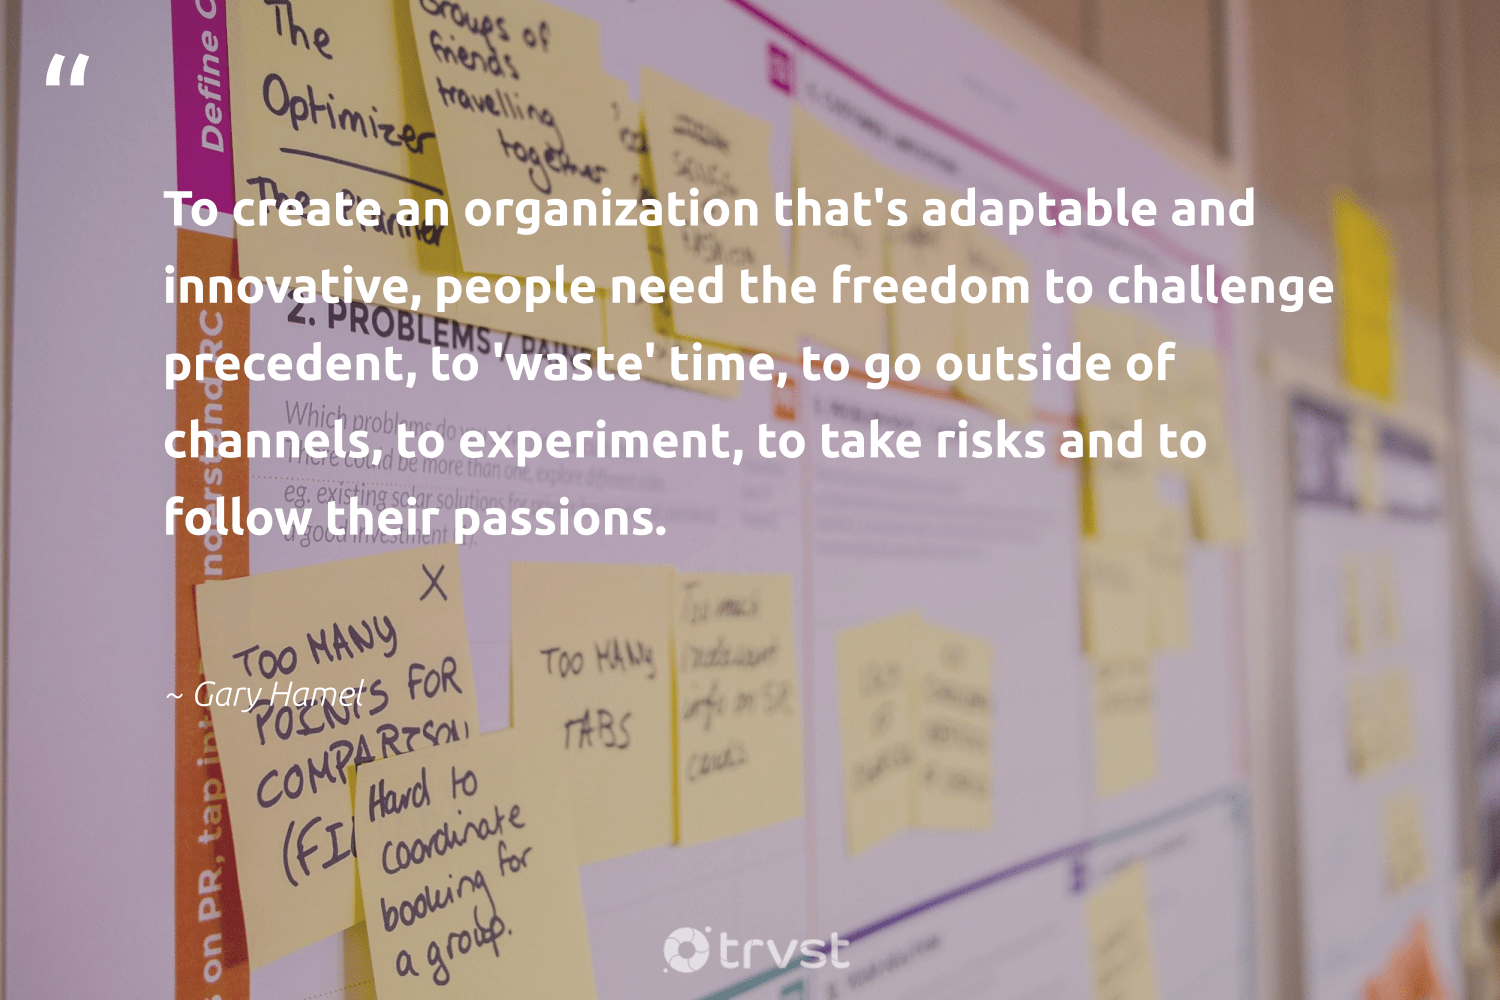 """To create an organization that's adaptable and innovative, people need the freedom to challenge precedent, to 'waste' time, to go outside of channels, to experiment, to take risks and to follow their passions.""  - Gary Hamel #trvst #quotes #freedom #waste #dogood #beinspired #weareallone #ecoconscious #socialchange #planetearthfirst #betterplanet #dosomething"